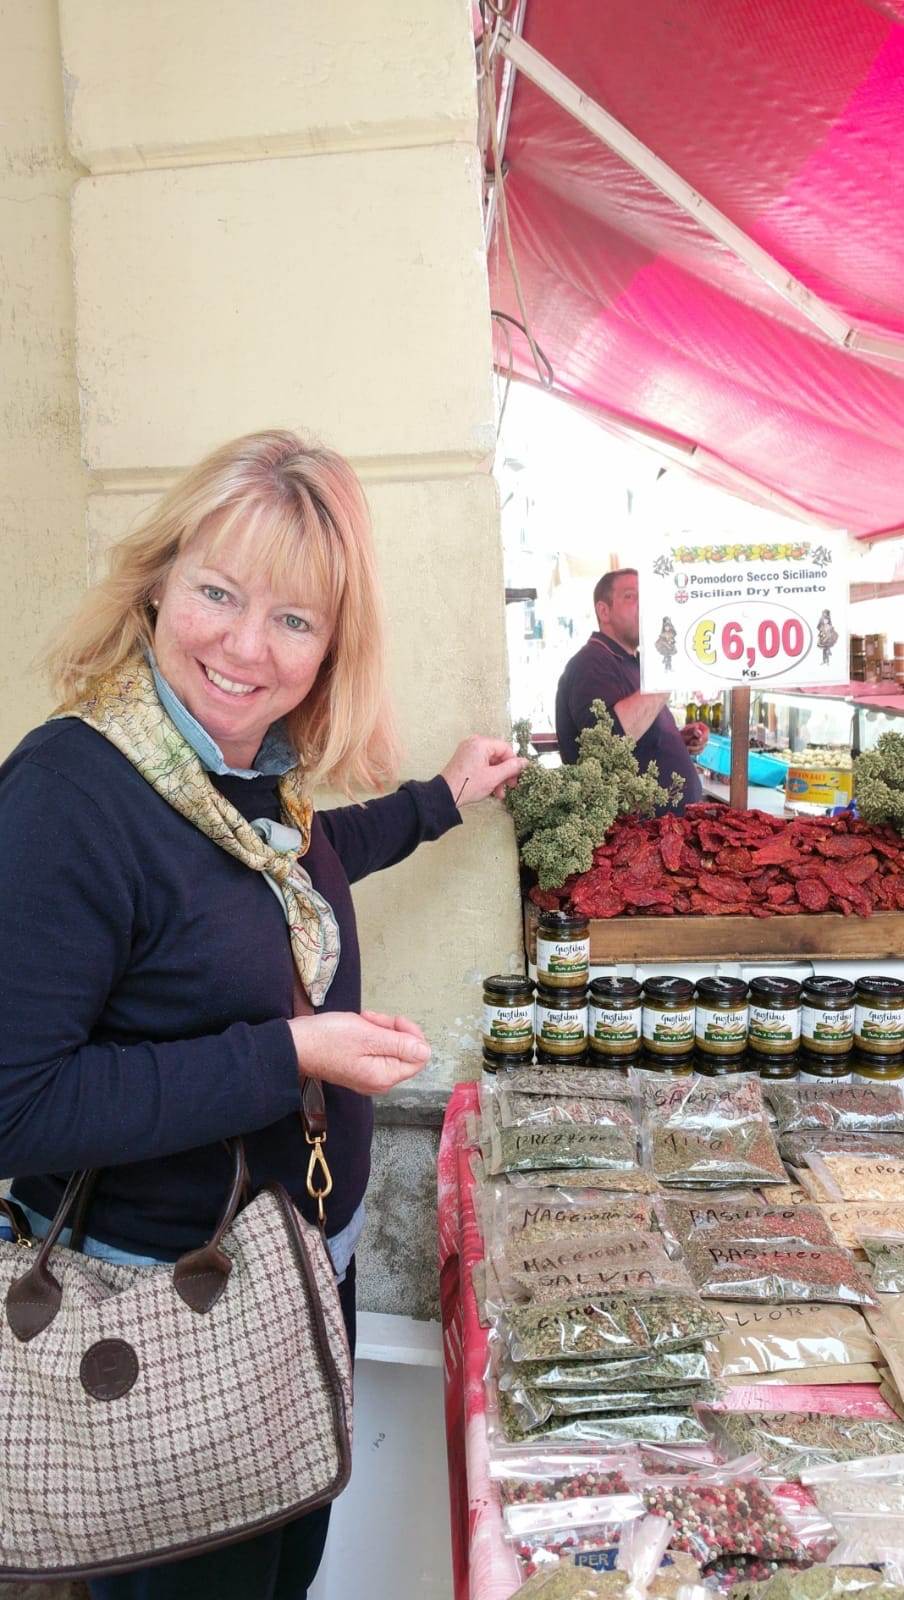 Herbs, spices and huge bunches of Oregano at Palermo street market